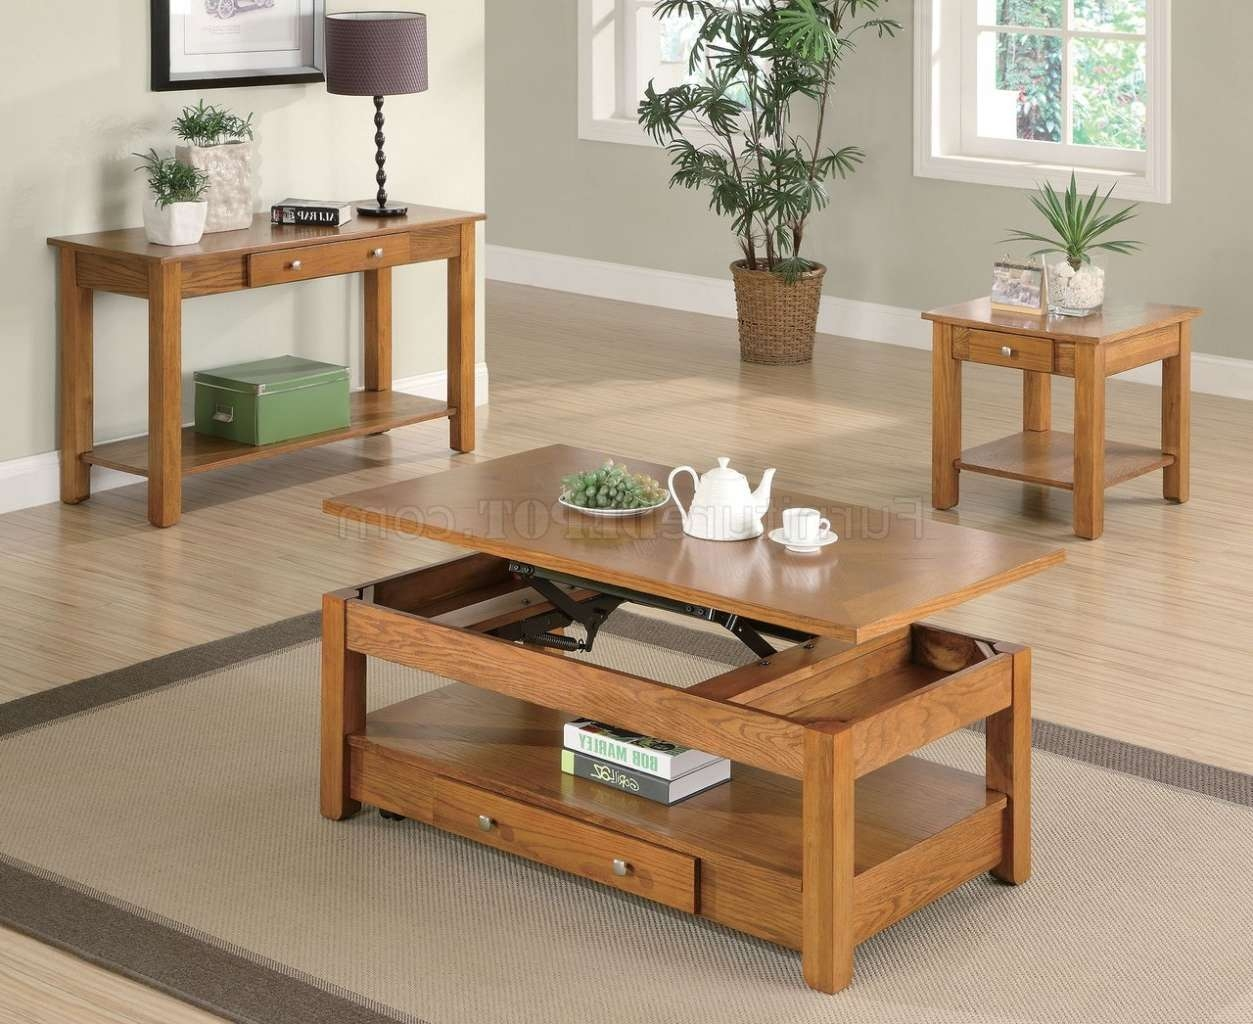 Oak Finish Modern Lift Top Coffee Table W/options With Regard To Popular Lift Top Oak Coffee Tables (View 18 of 20)